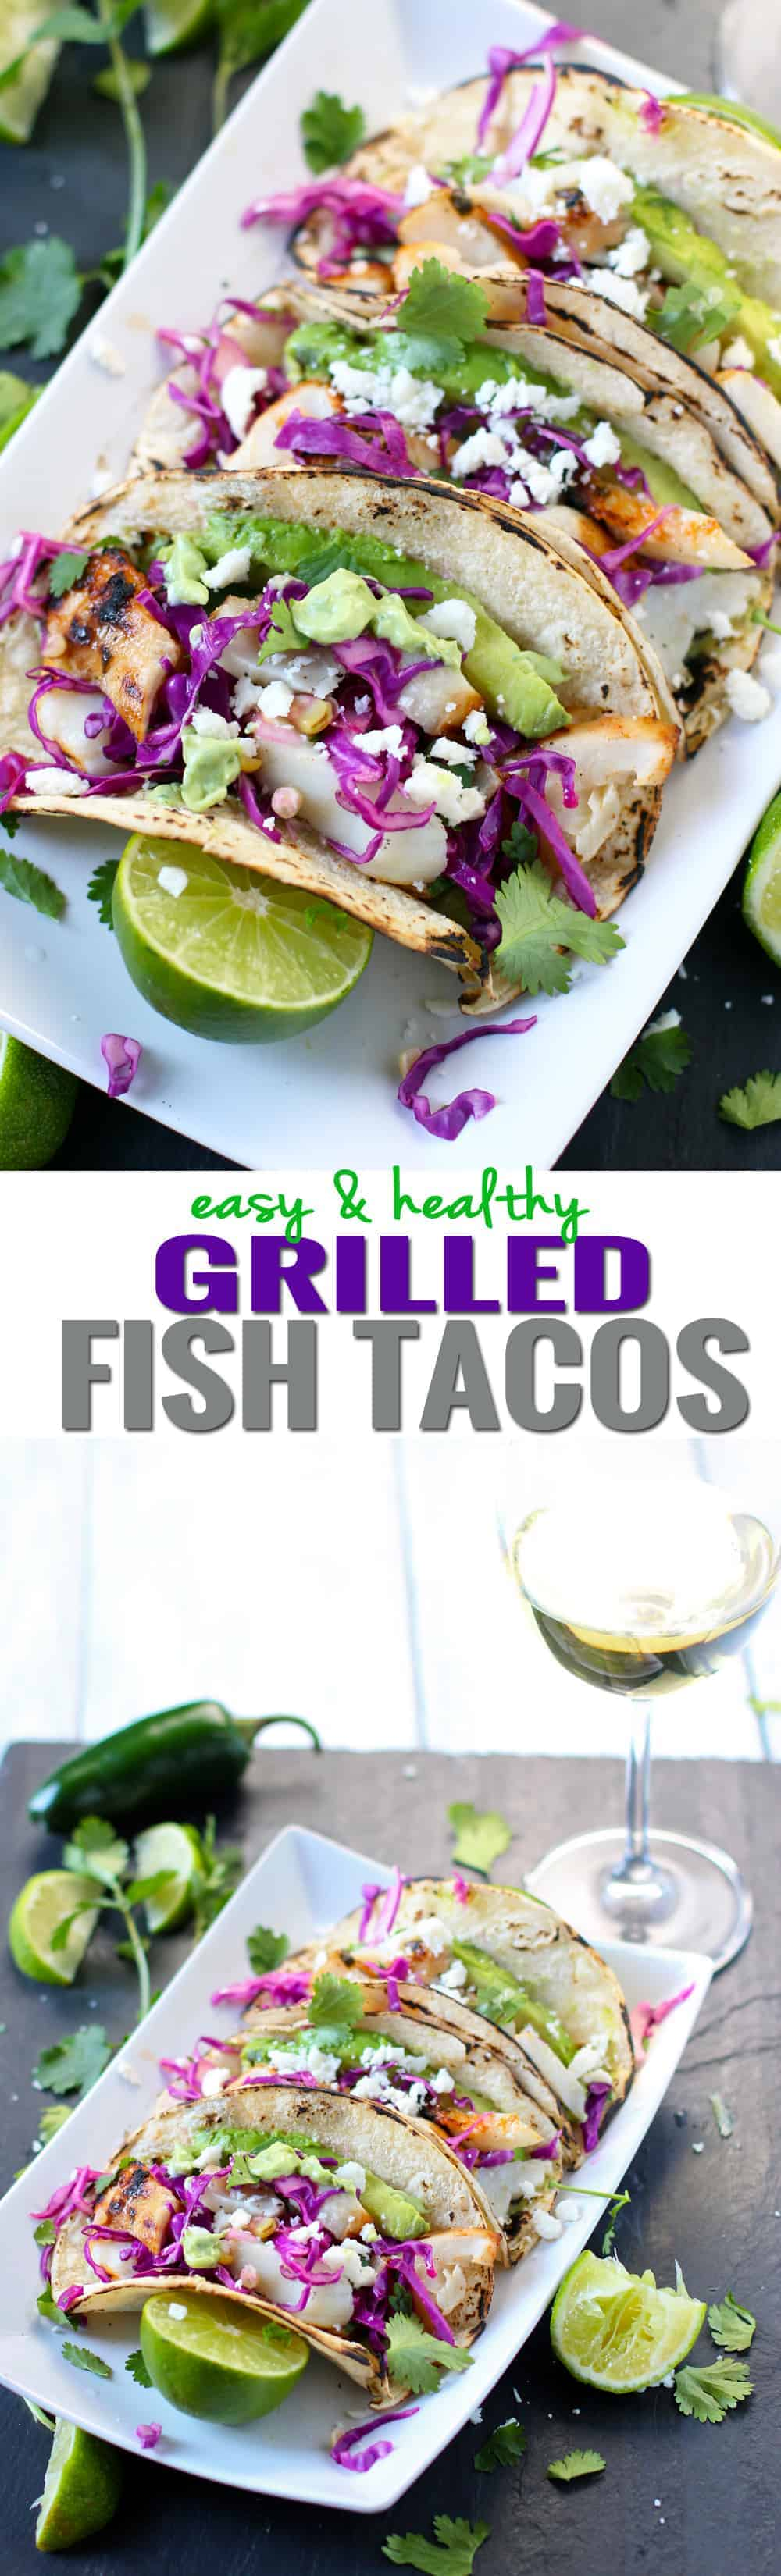 Easy and Healthy Grilled Fish Tacos